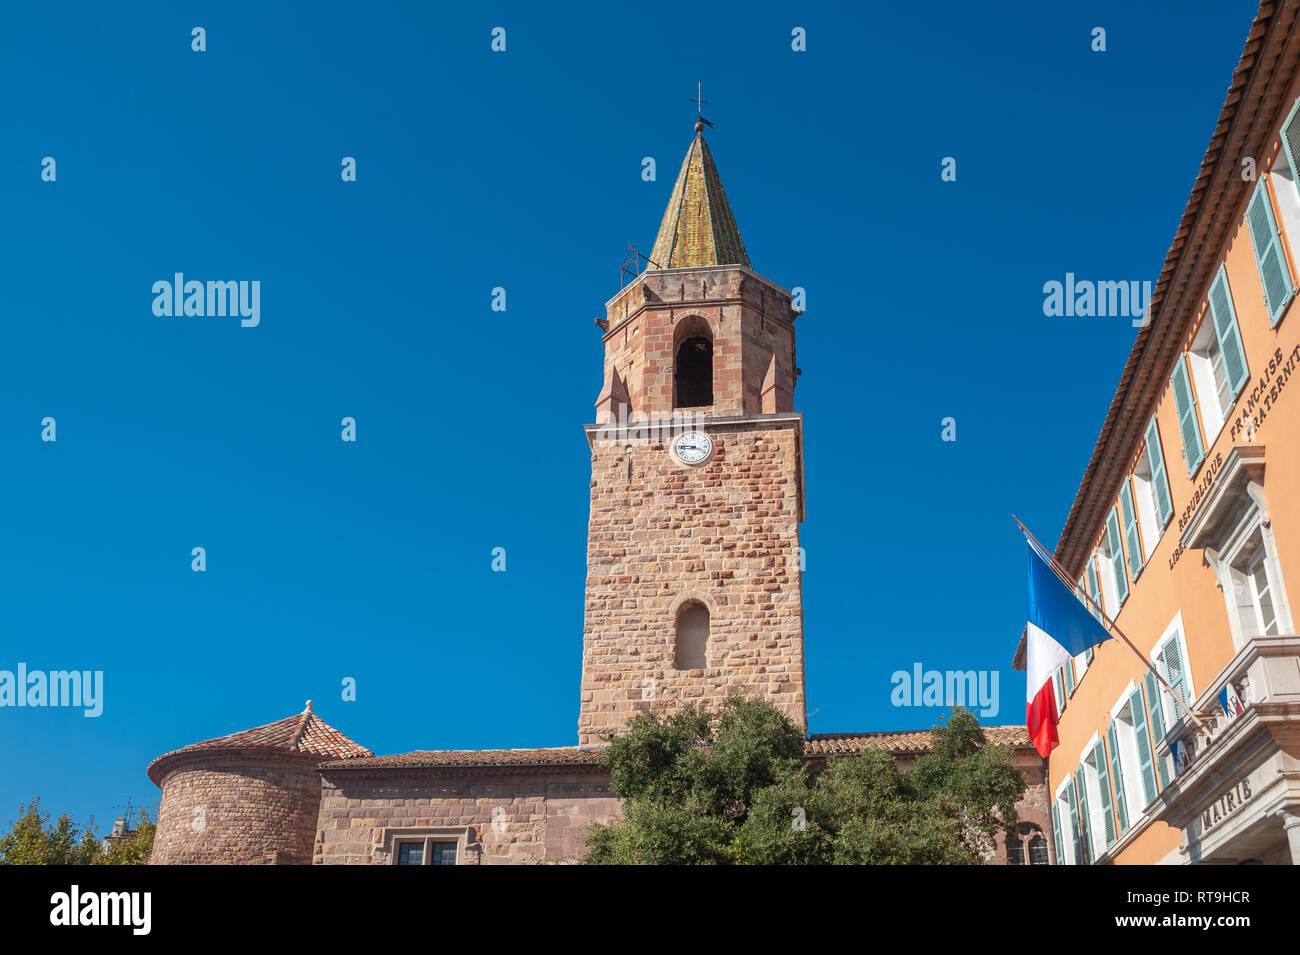 Cathedral Saint-Leonce, Fréjus, Var, Provence-Alpes-Cote d`Azur, France, Europe - Stock Image